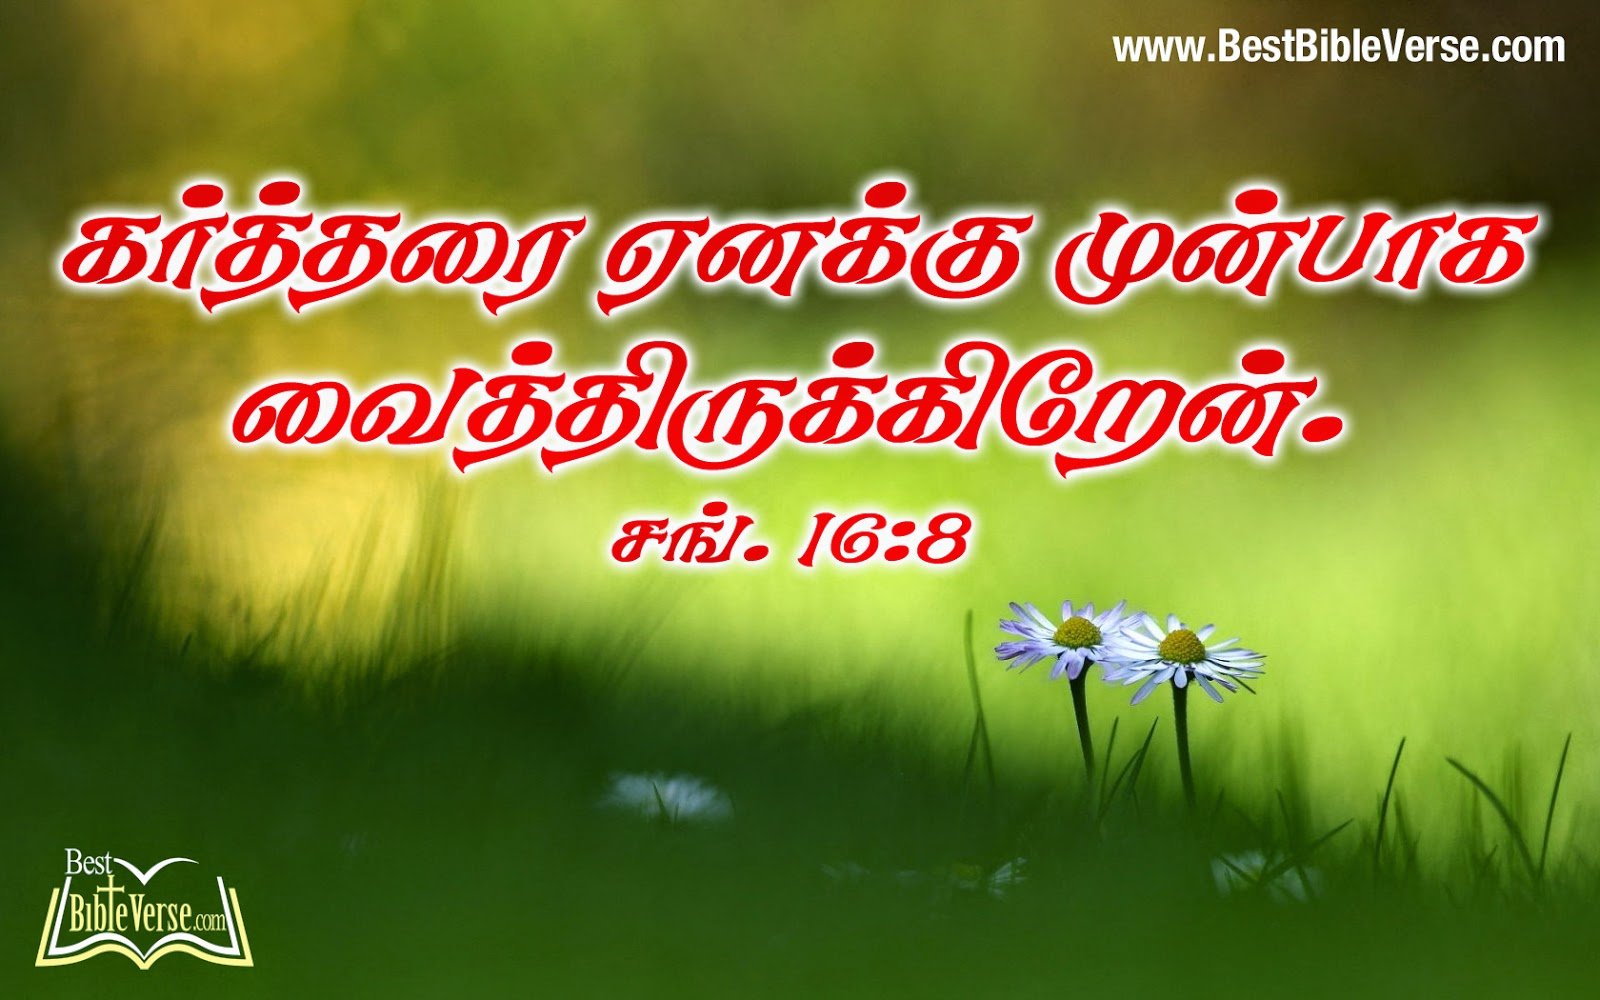 Tamil Christian Wallpapers